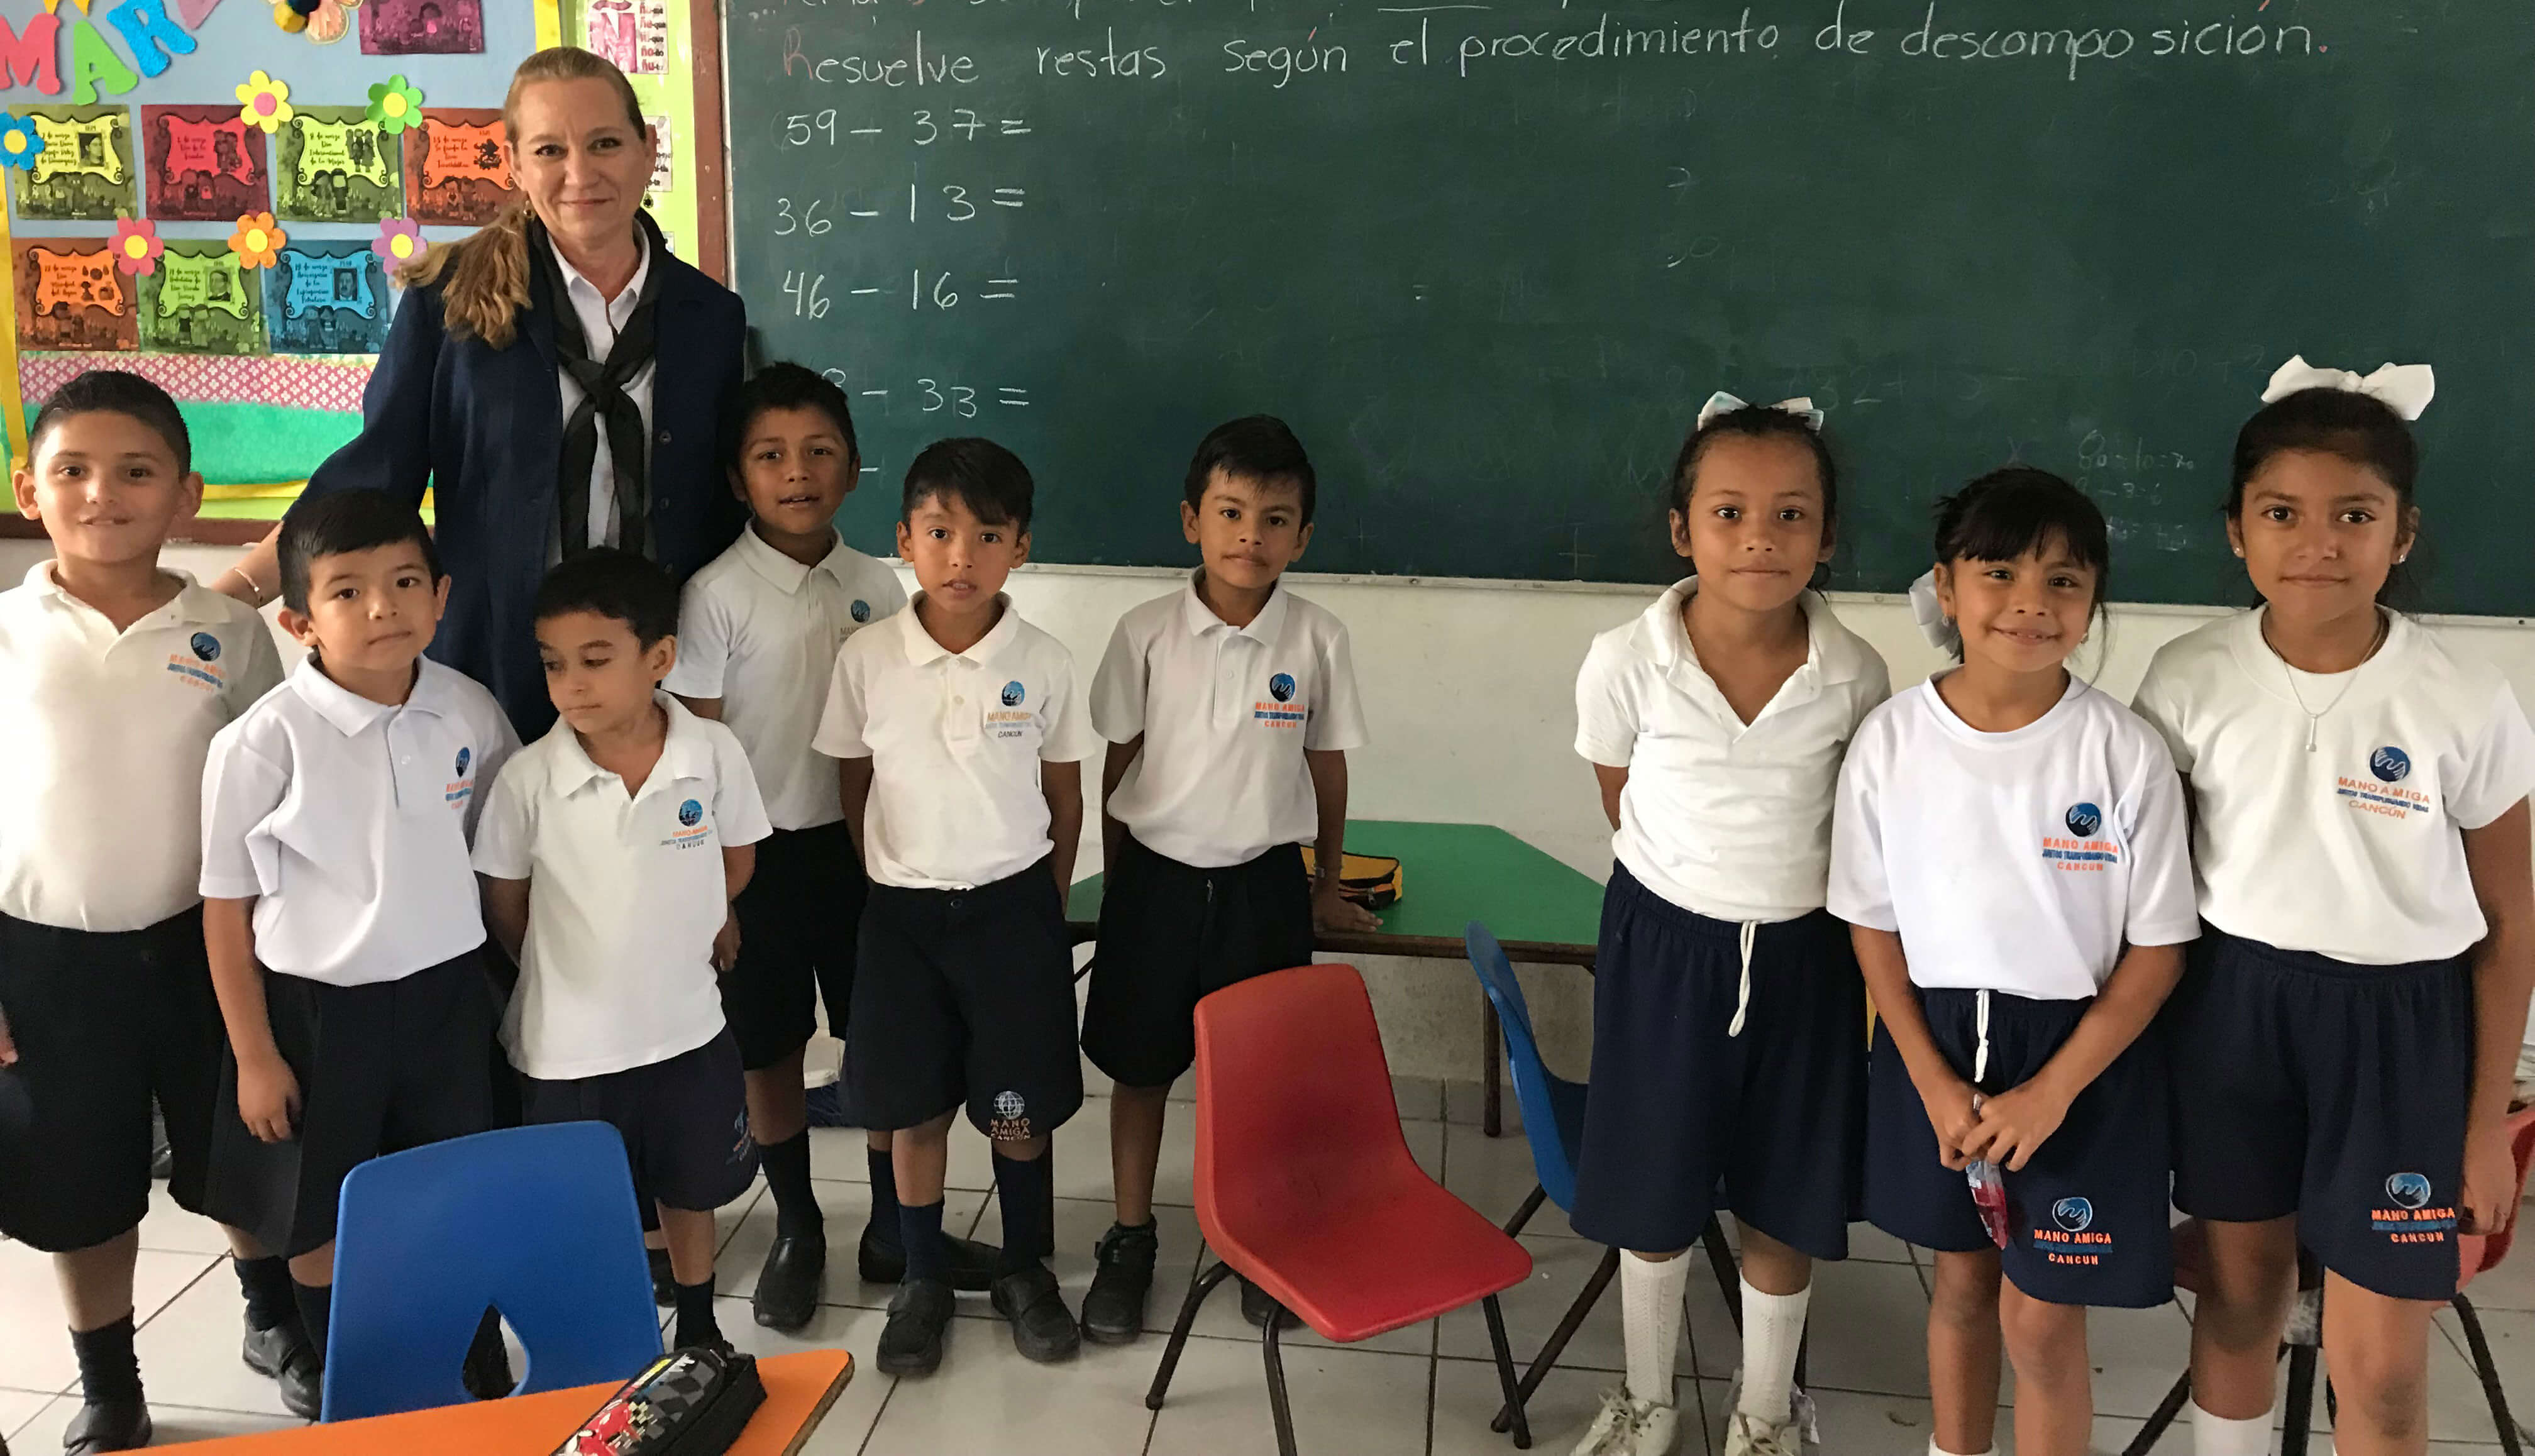 Students and teachers at Mano Amiga Cancun